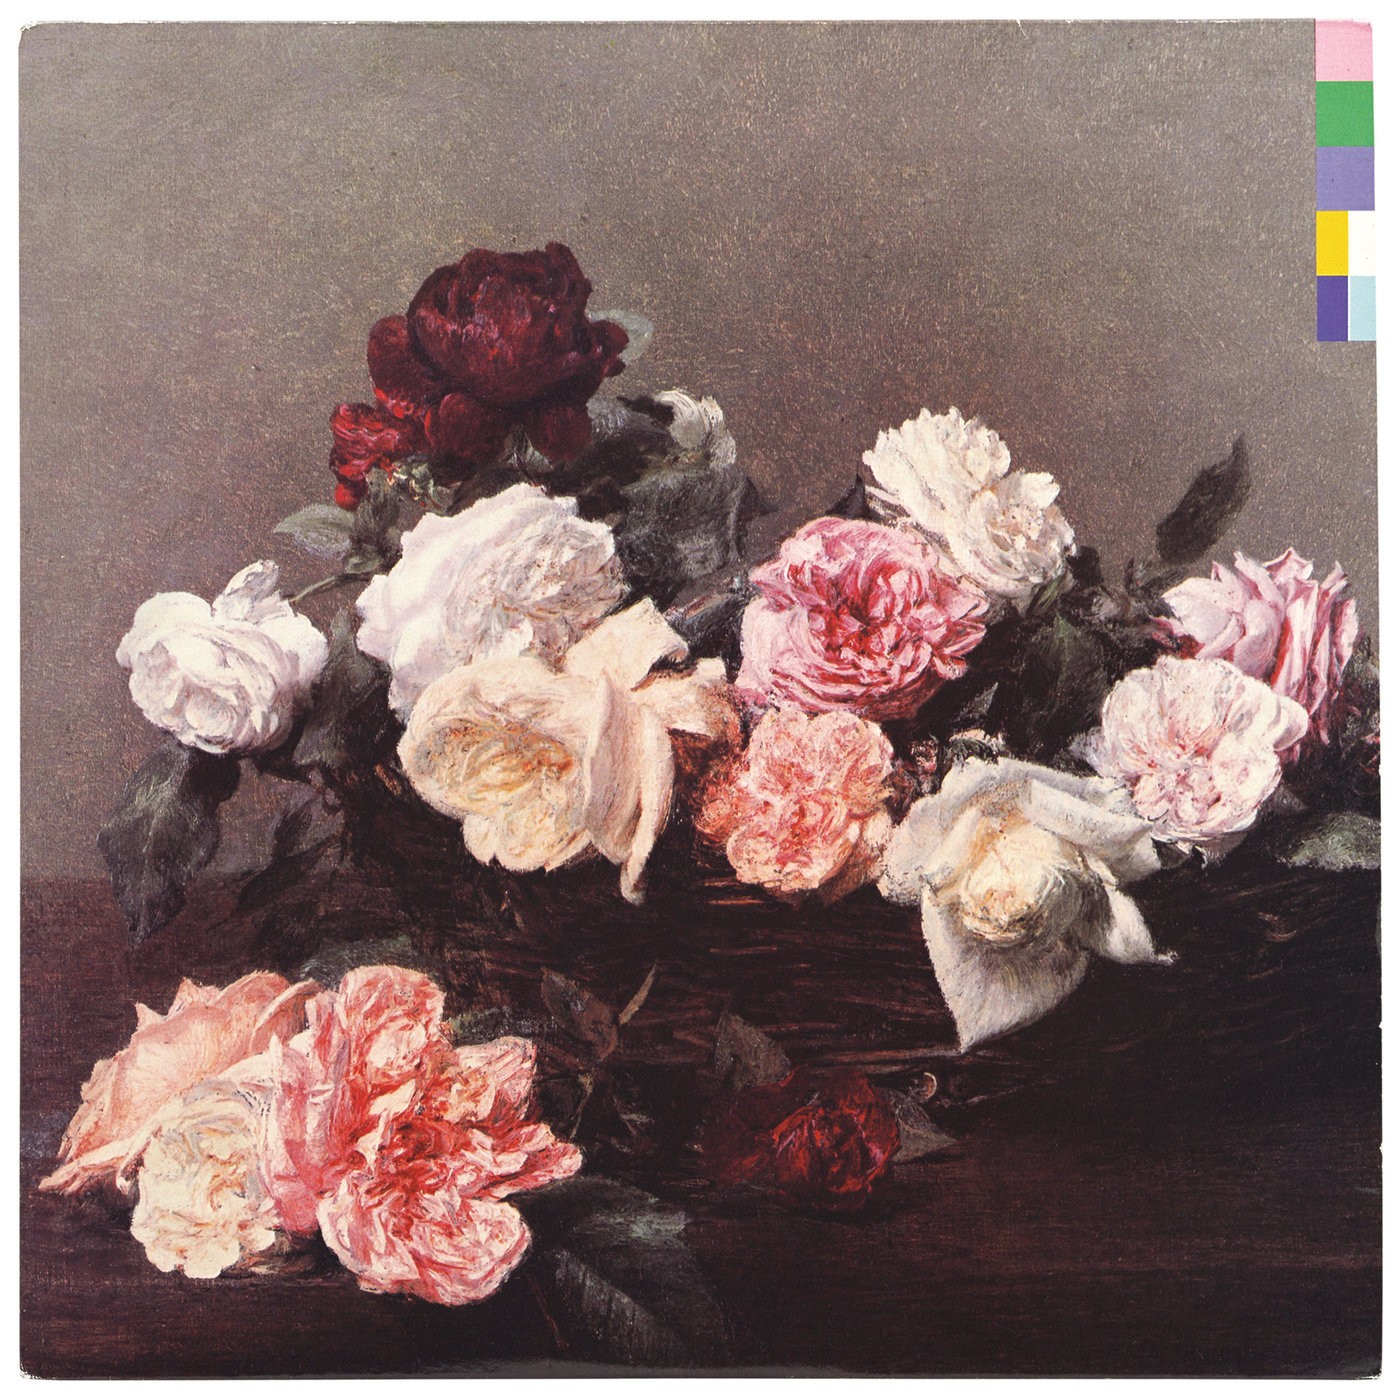 Medium neworder power 20corruption 20 26 20lies 20front